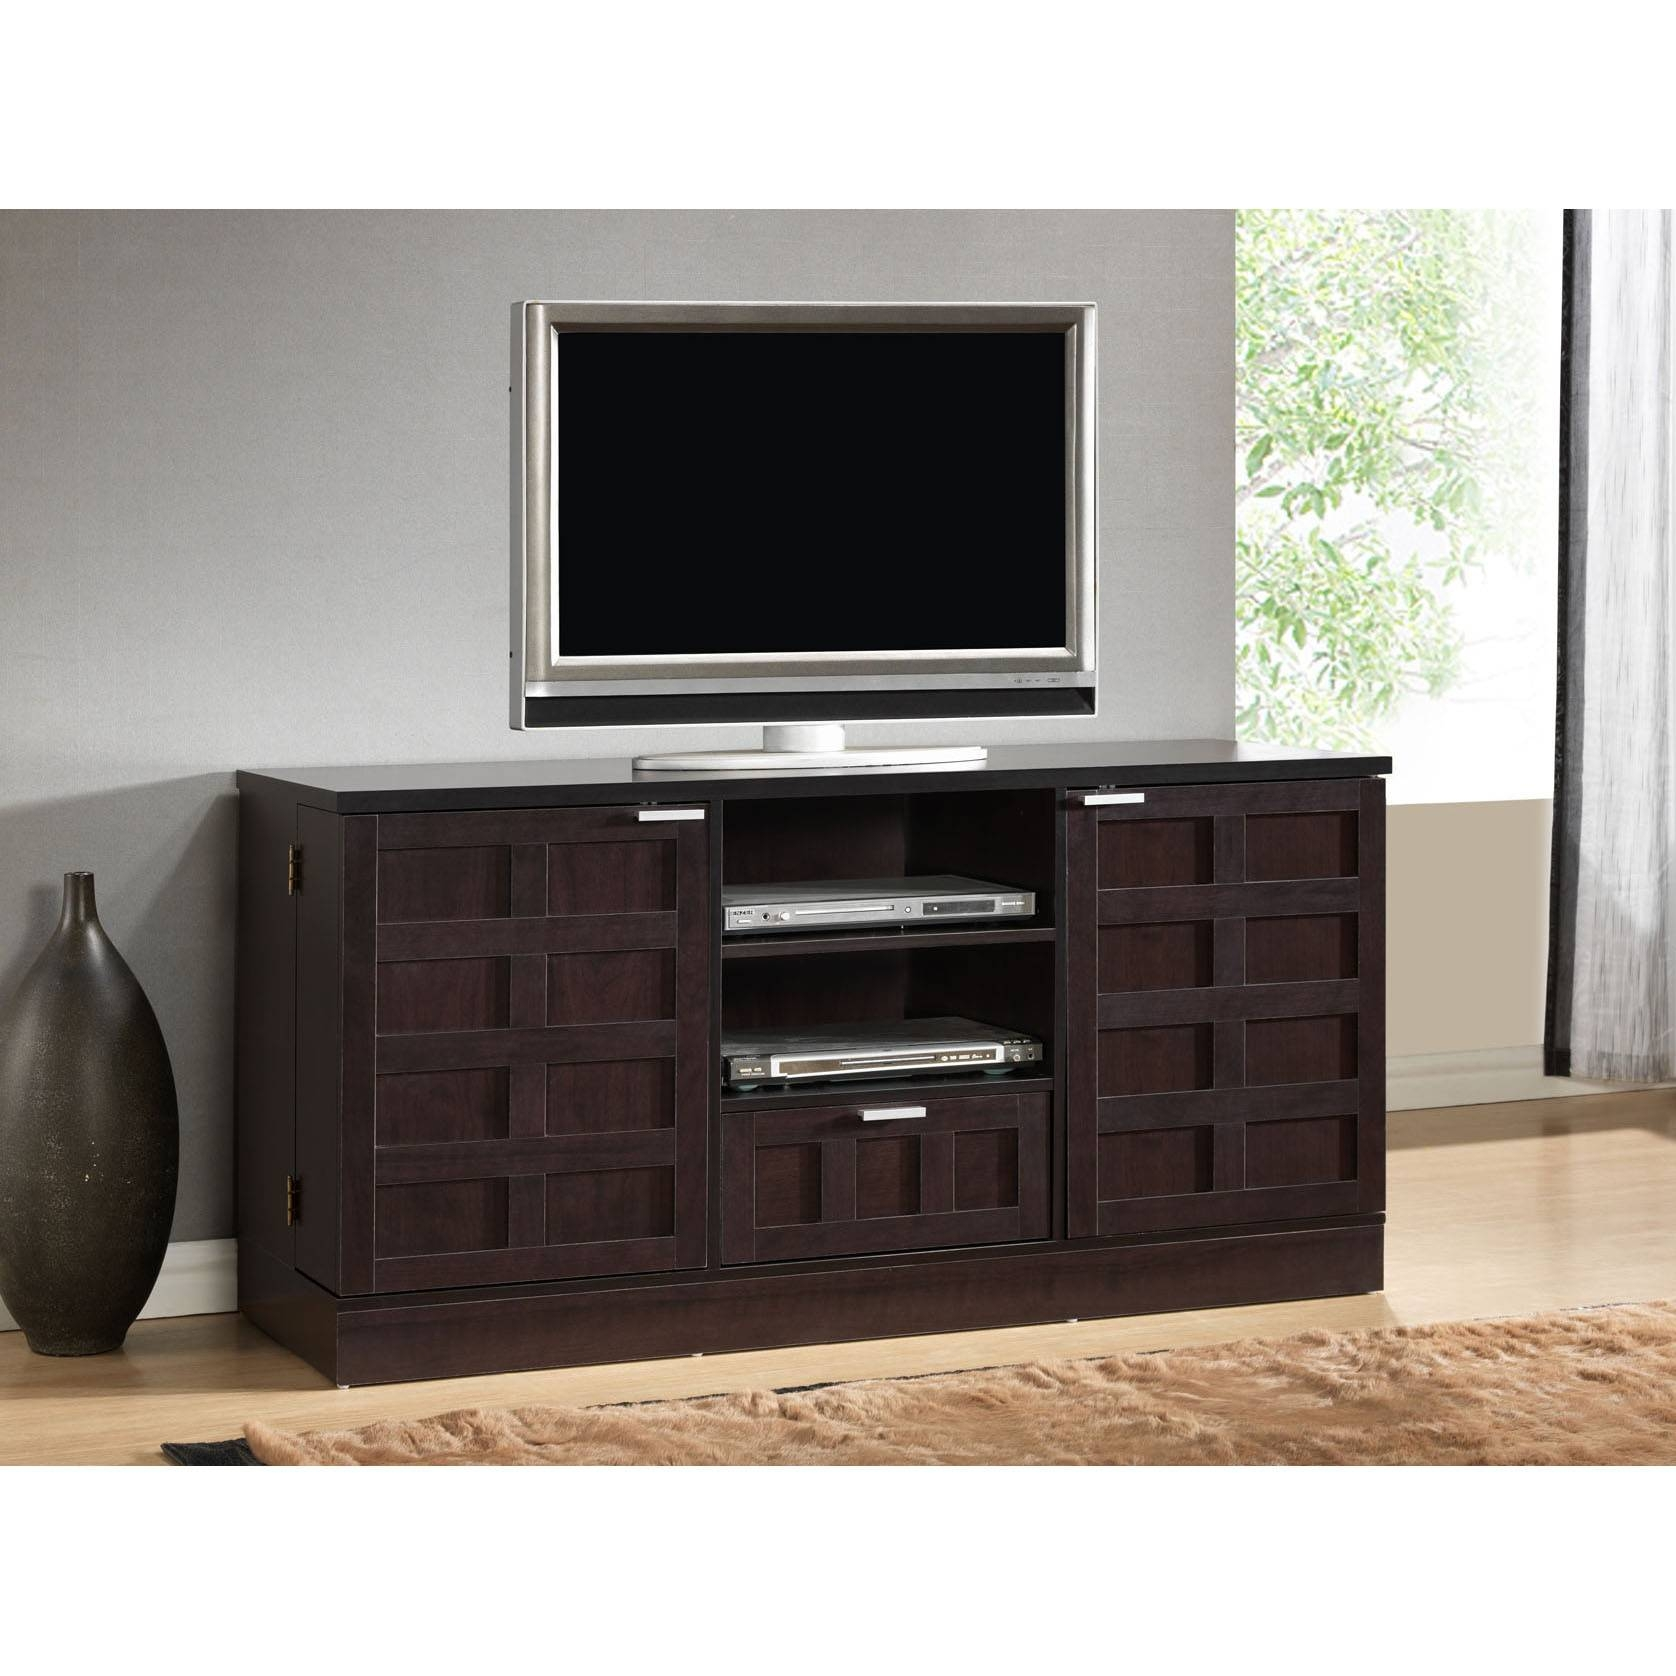 Black Wooden Tv Cabinet With Doors And Racks Also Single Drawer On with Black Tv Cabinets With Drawers (Image 6 of 15)